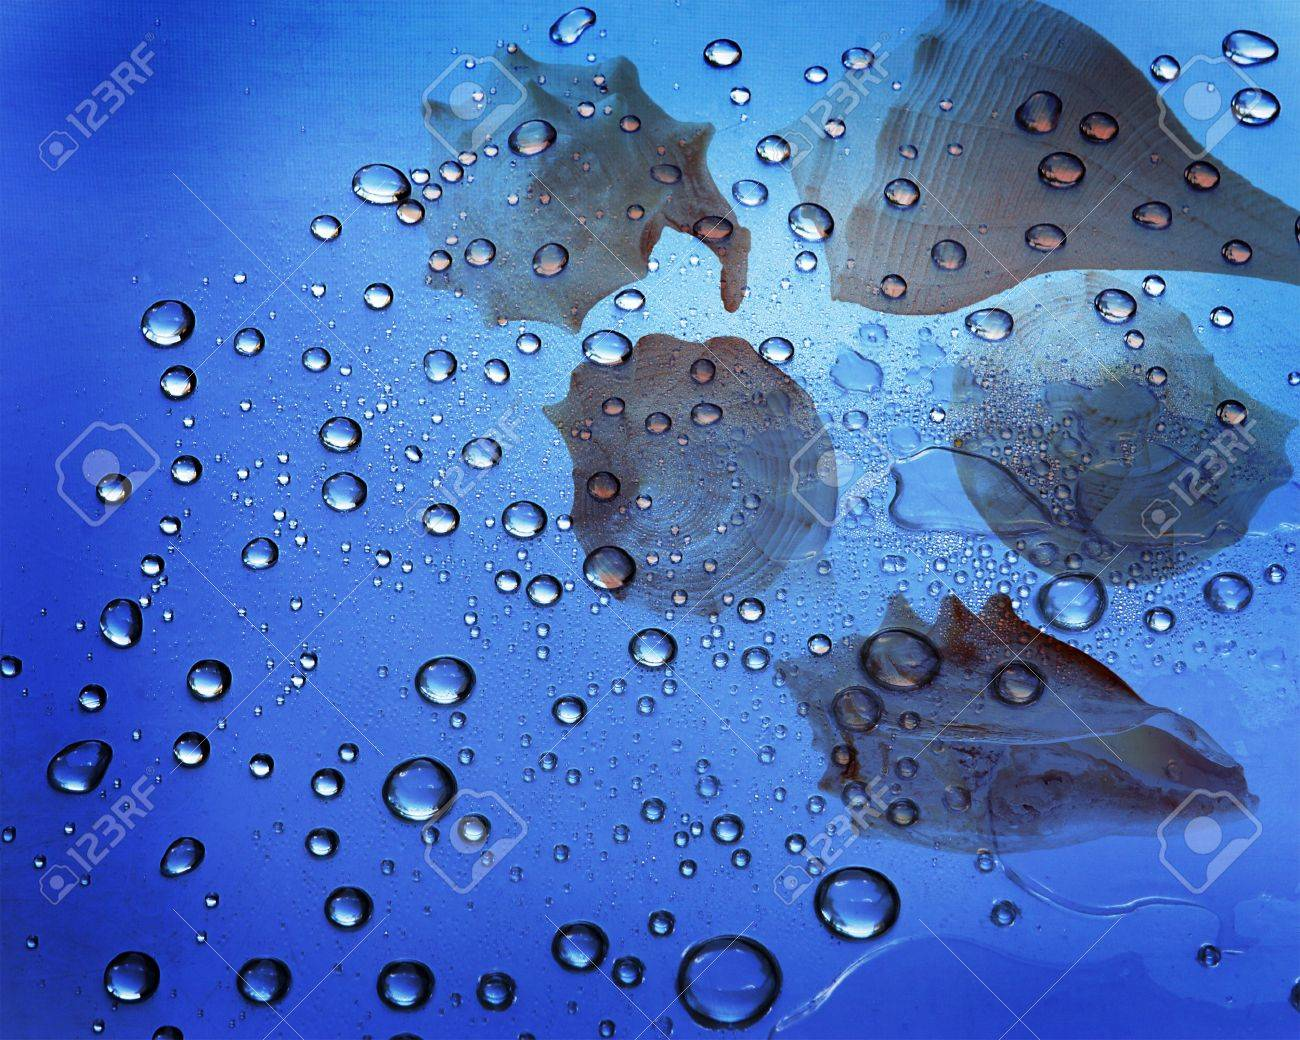 Seashell under water with bubbles all over Stock Photo - 4268335